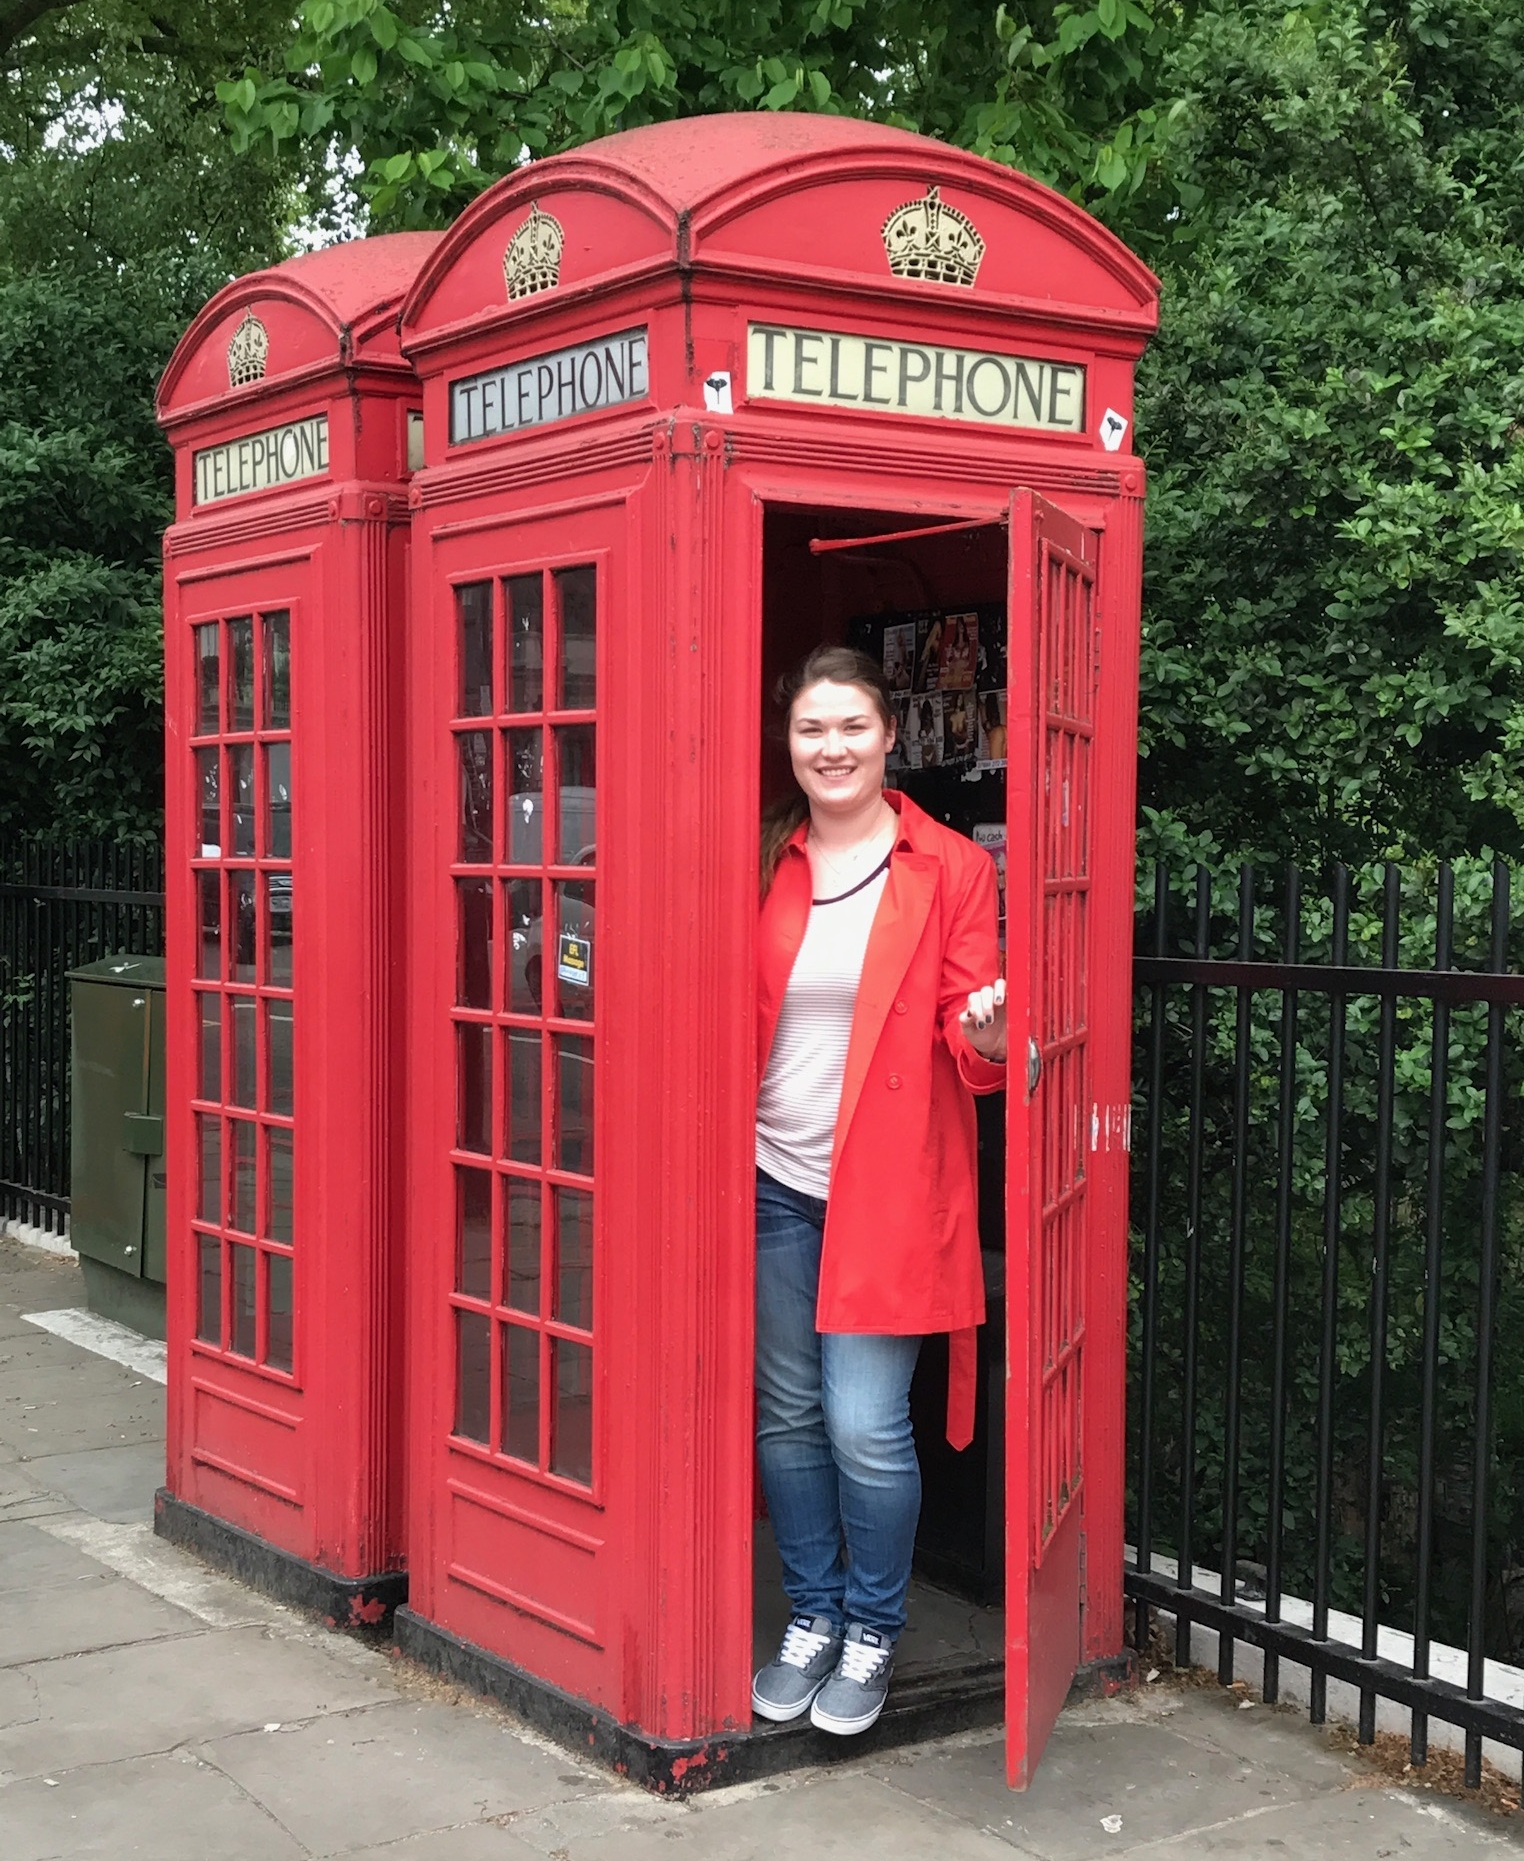 Typical Cliche London Tourist Pic in a Stinky Telephone Booth